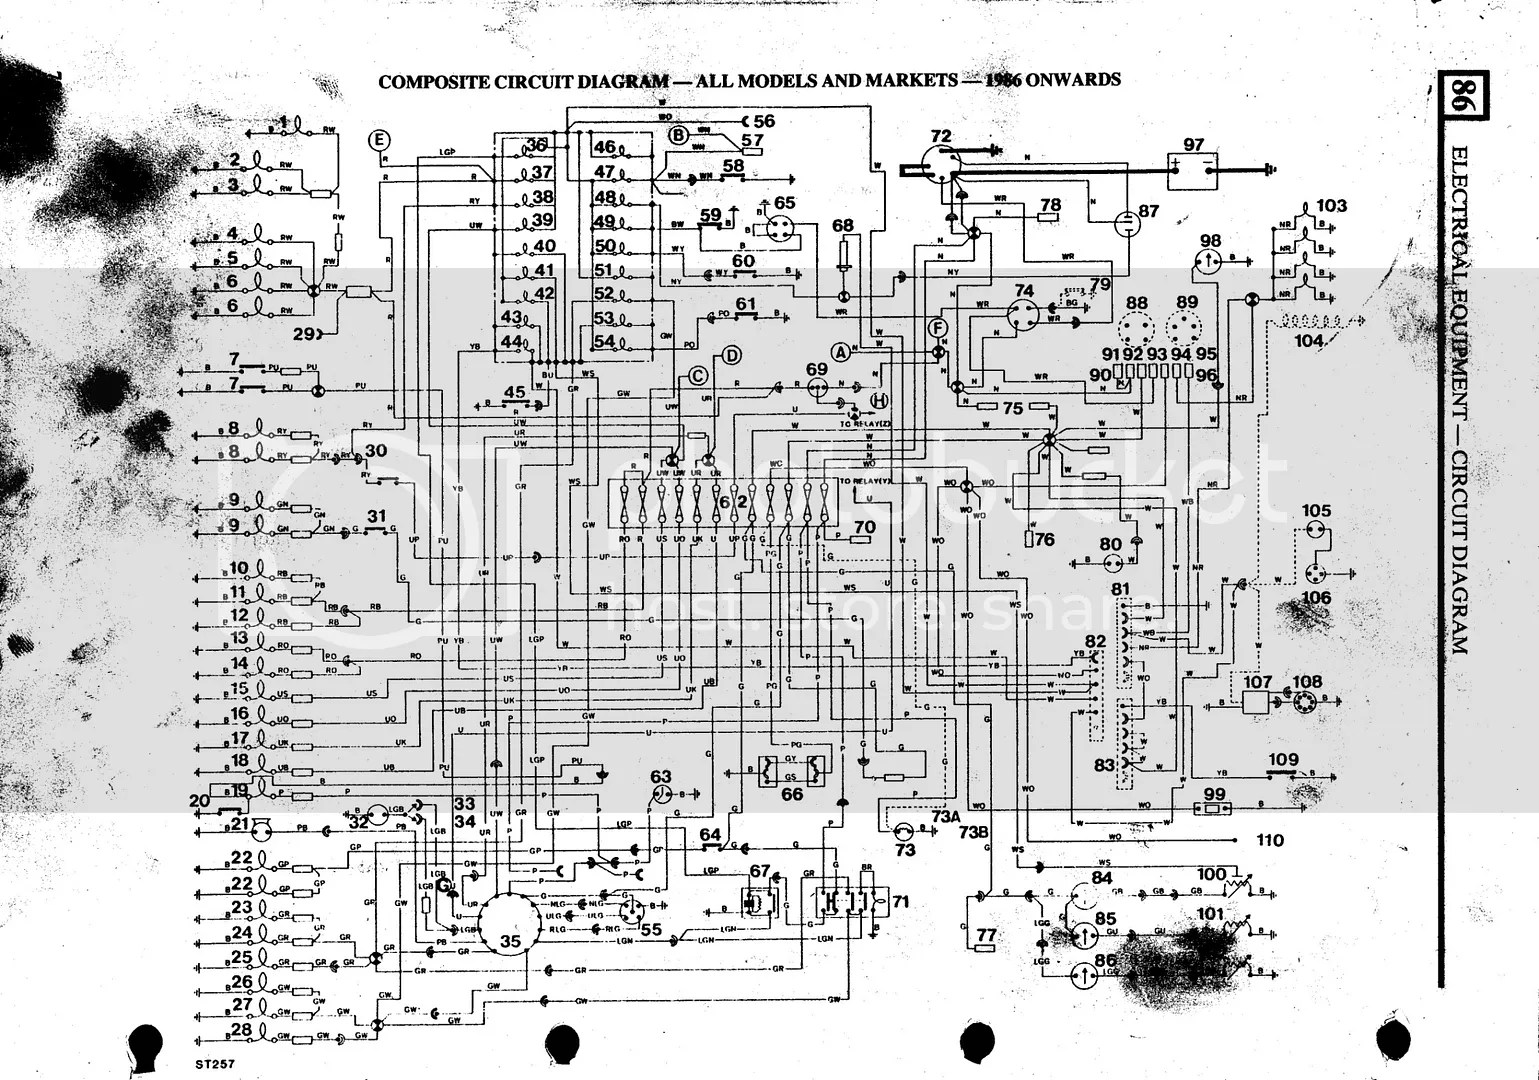 hight resolution of lr 90 wiring diagram wiring diagram forward lr 90 wiring diagram